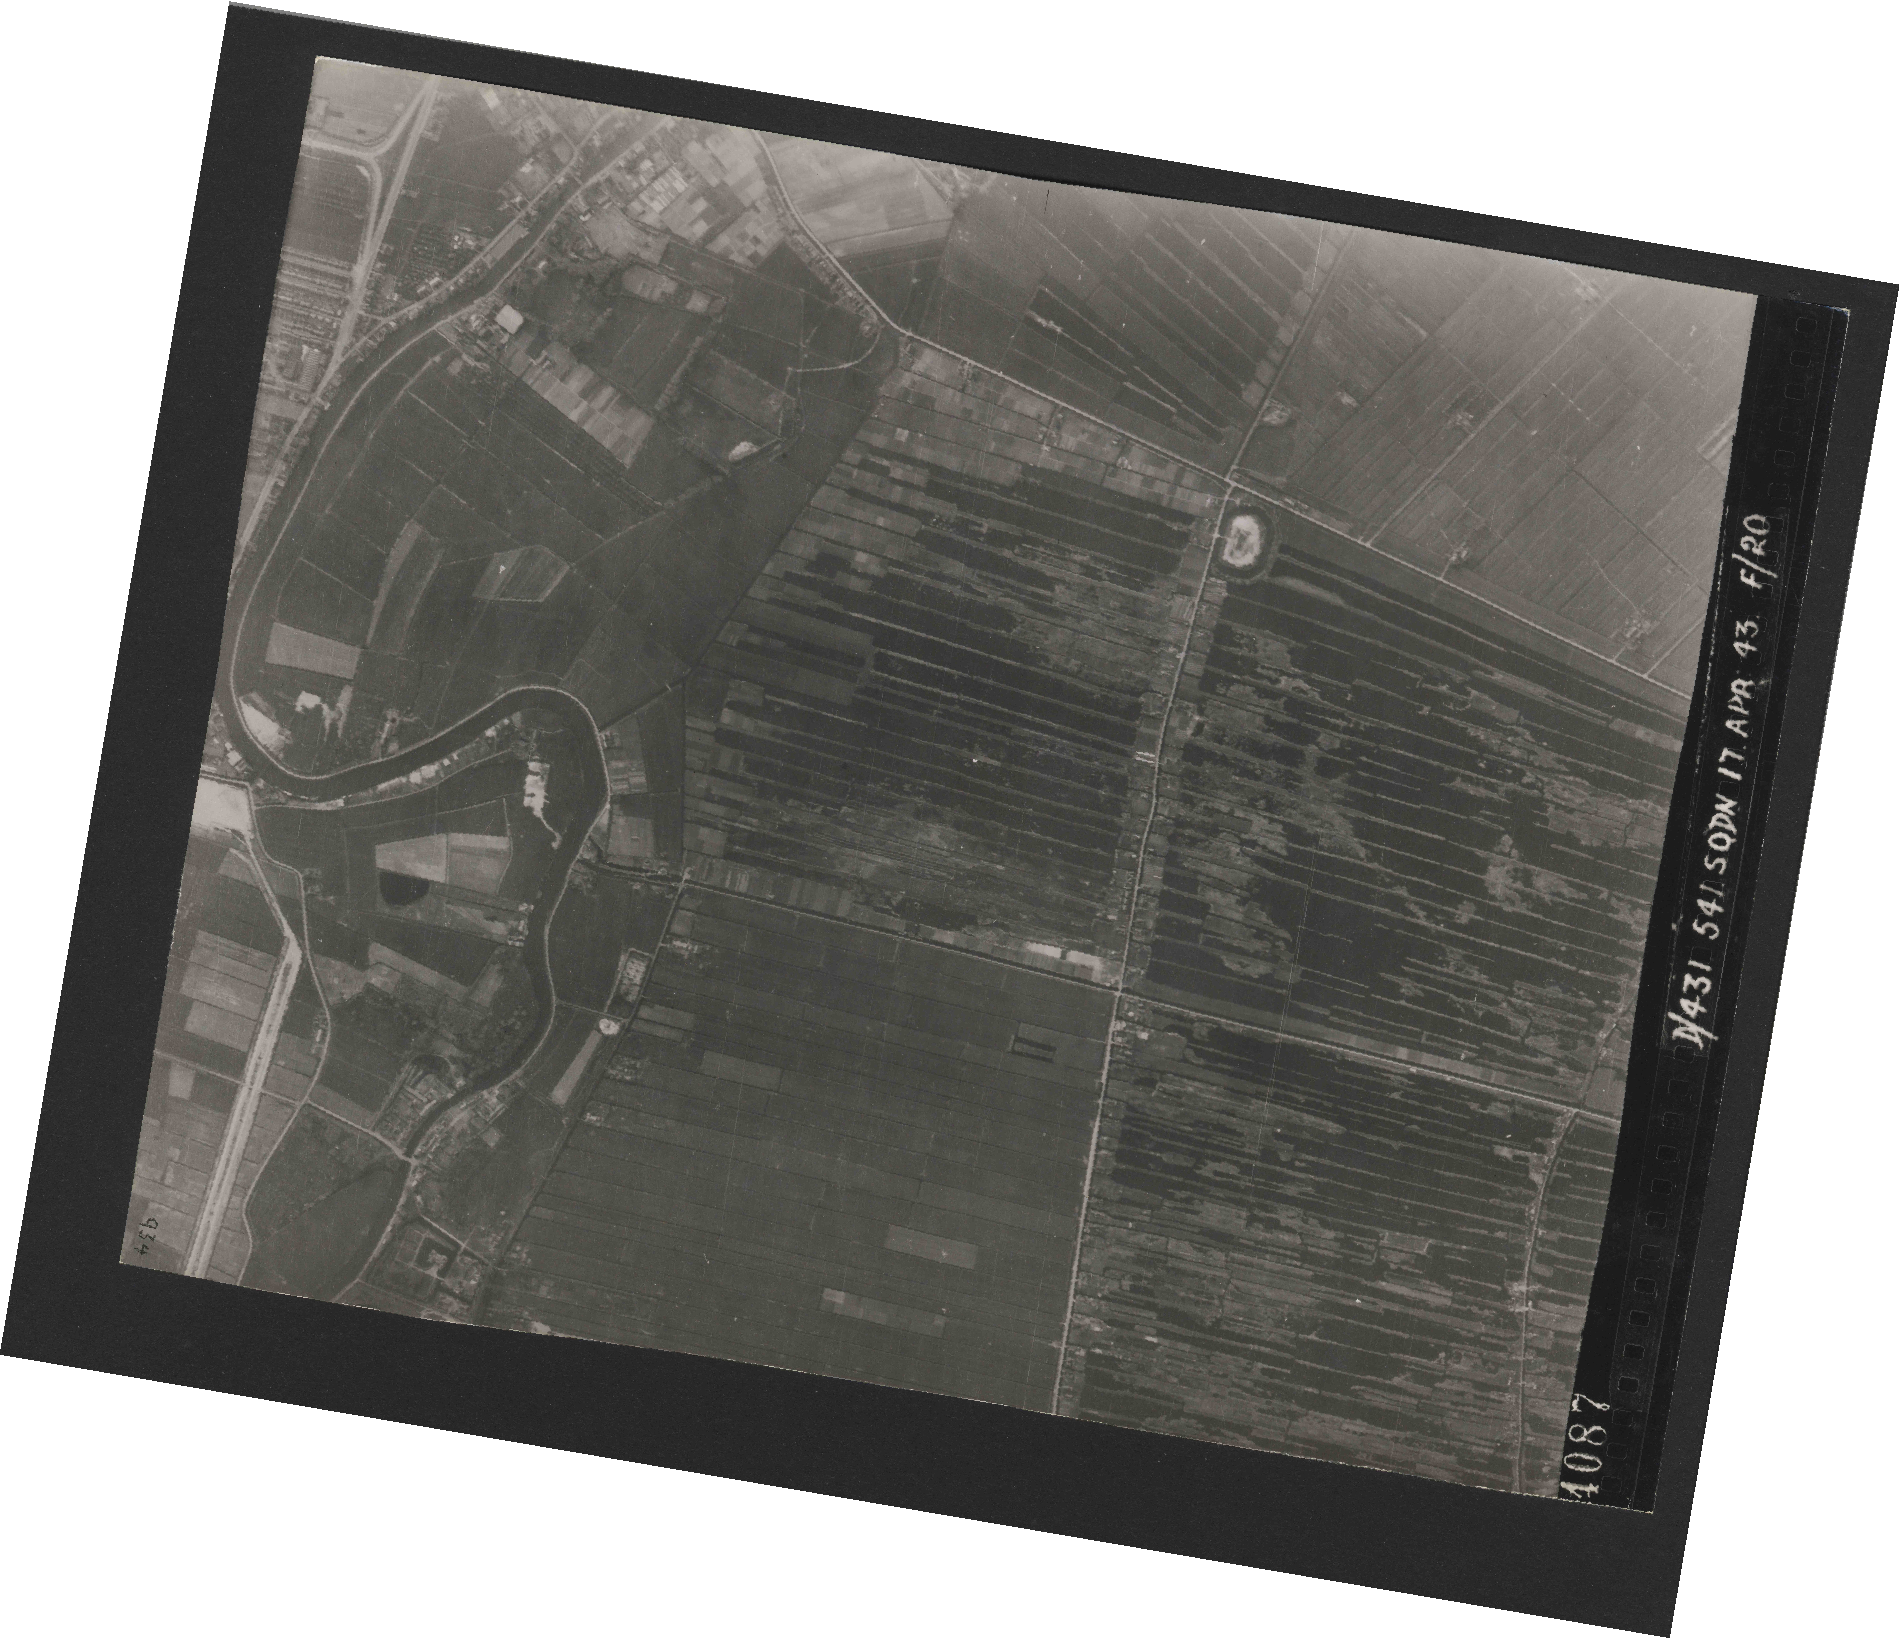 Collection RAF aerial photos 1940-1945 - flight 329, run 01, photo 4087